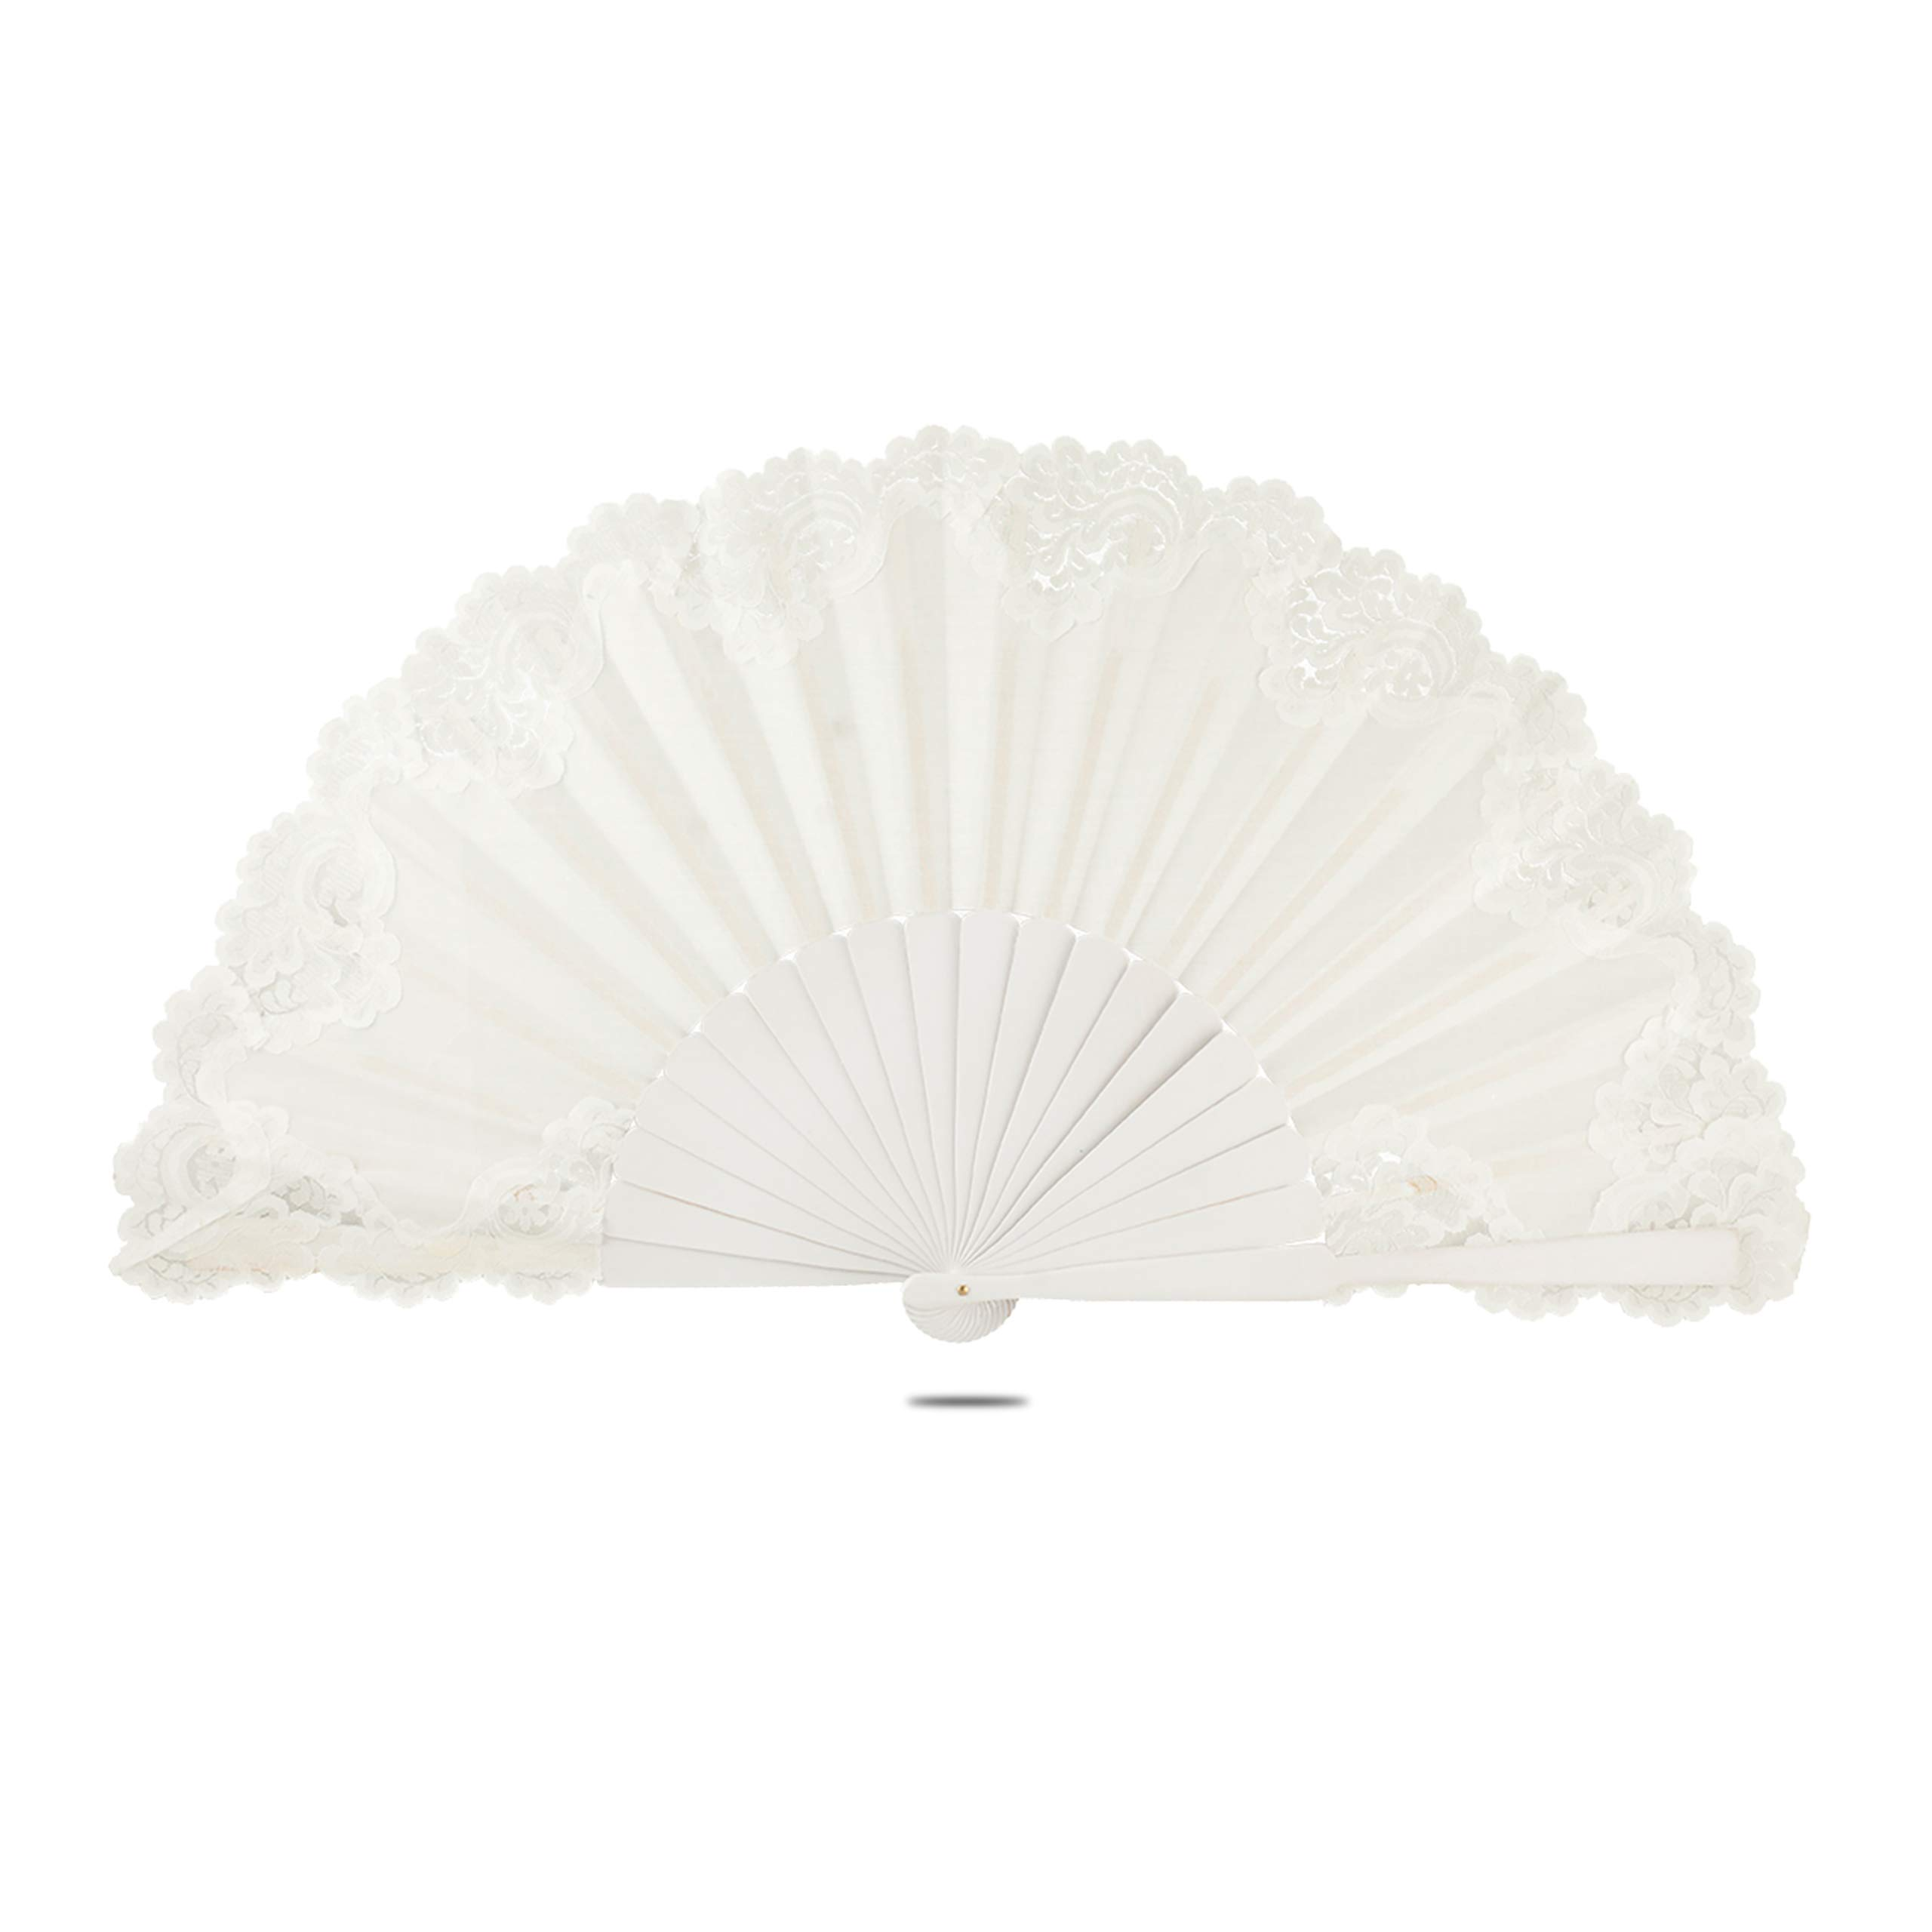 Ole Ole Flamenco Spanish Hand Fan Pericon with lace Large 13 inch 33 cm Handmade Made of Wood and Fabric Abanicos Españoles White with White Lace